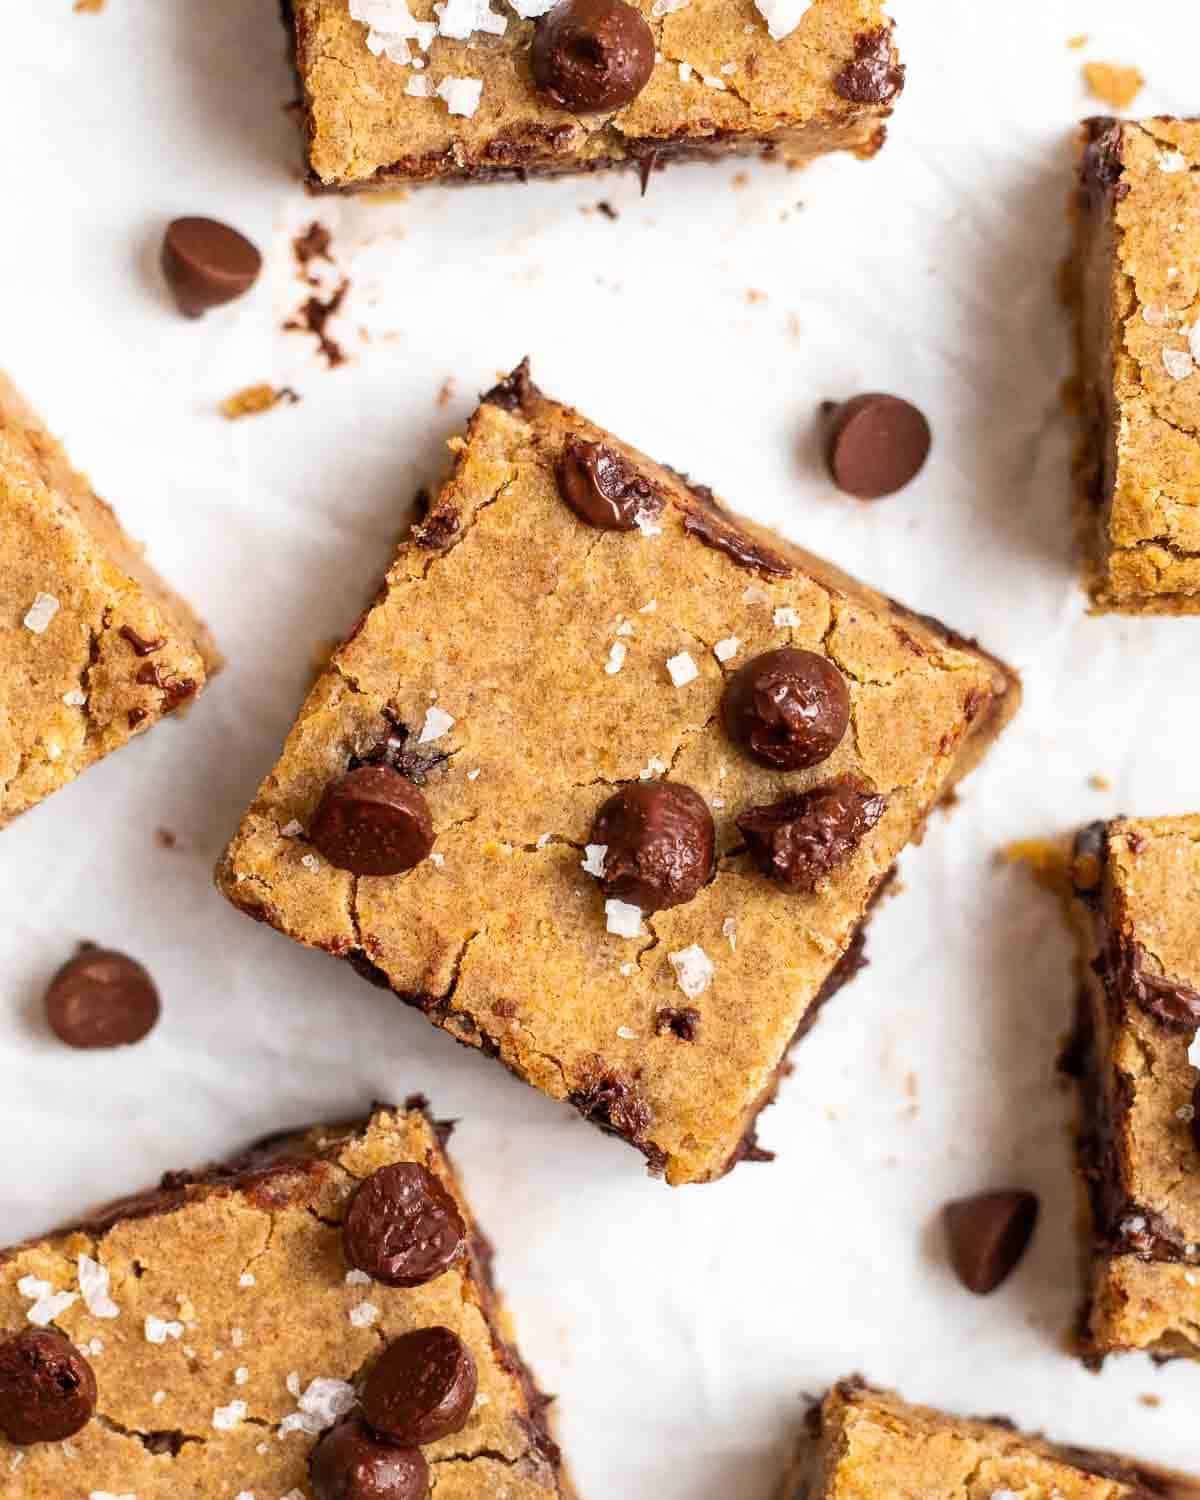 Chickpea blondies arranged on a parchment paper topped with chocolate chips and salt flakes.